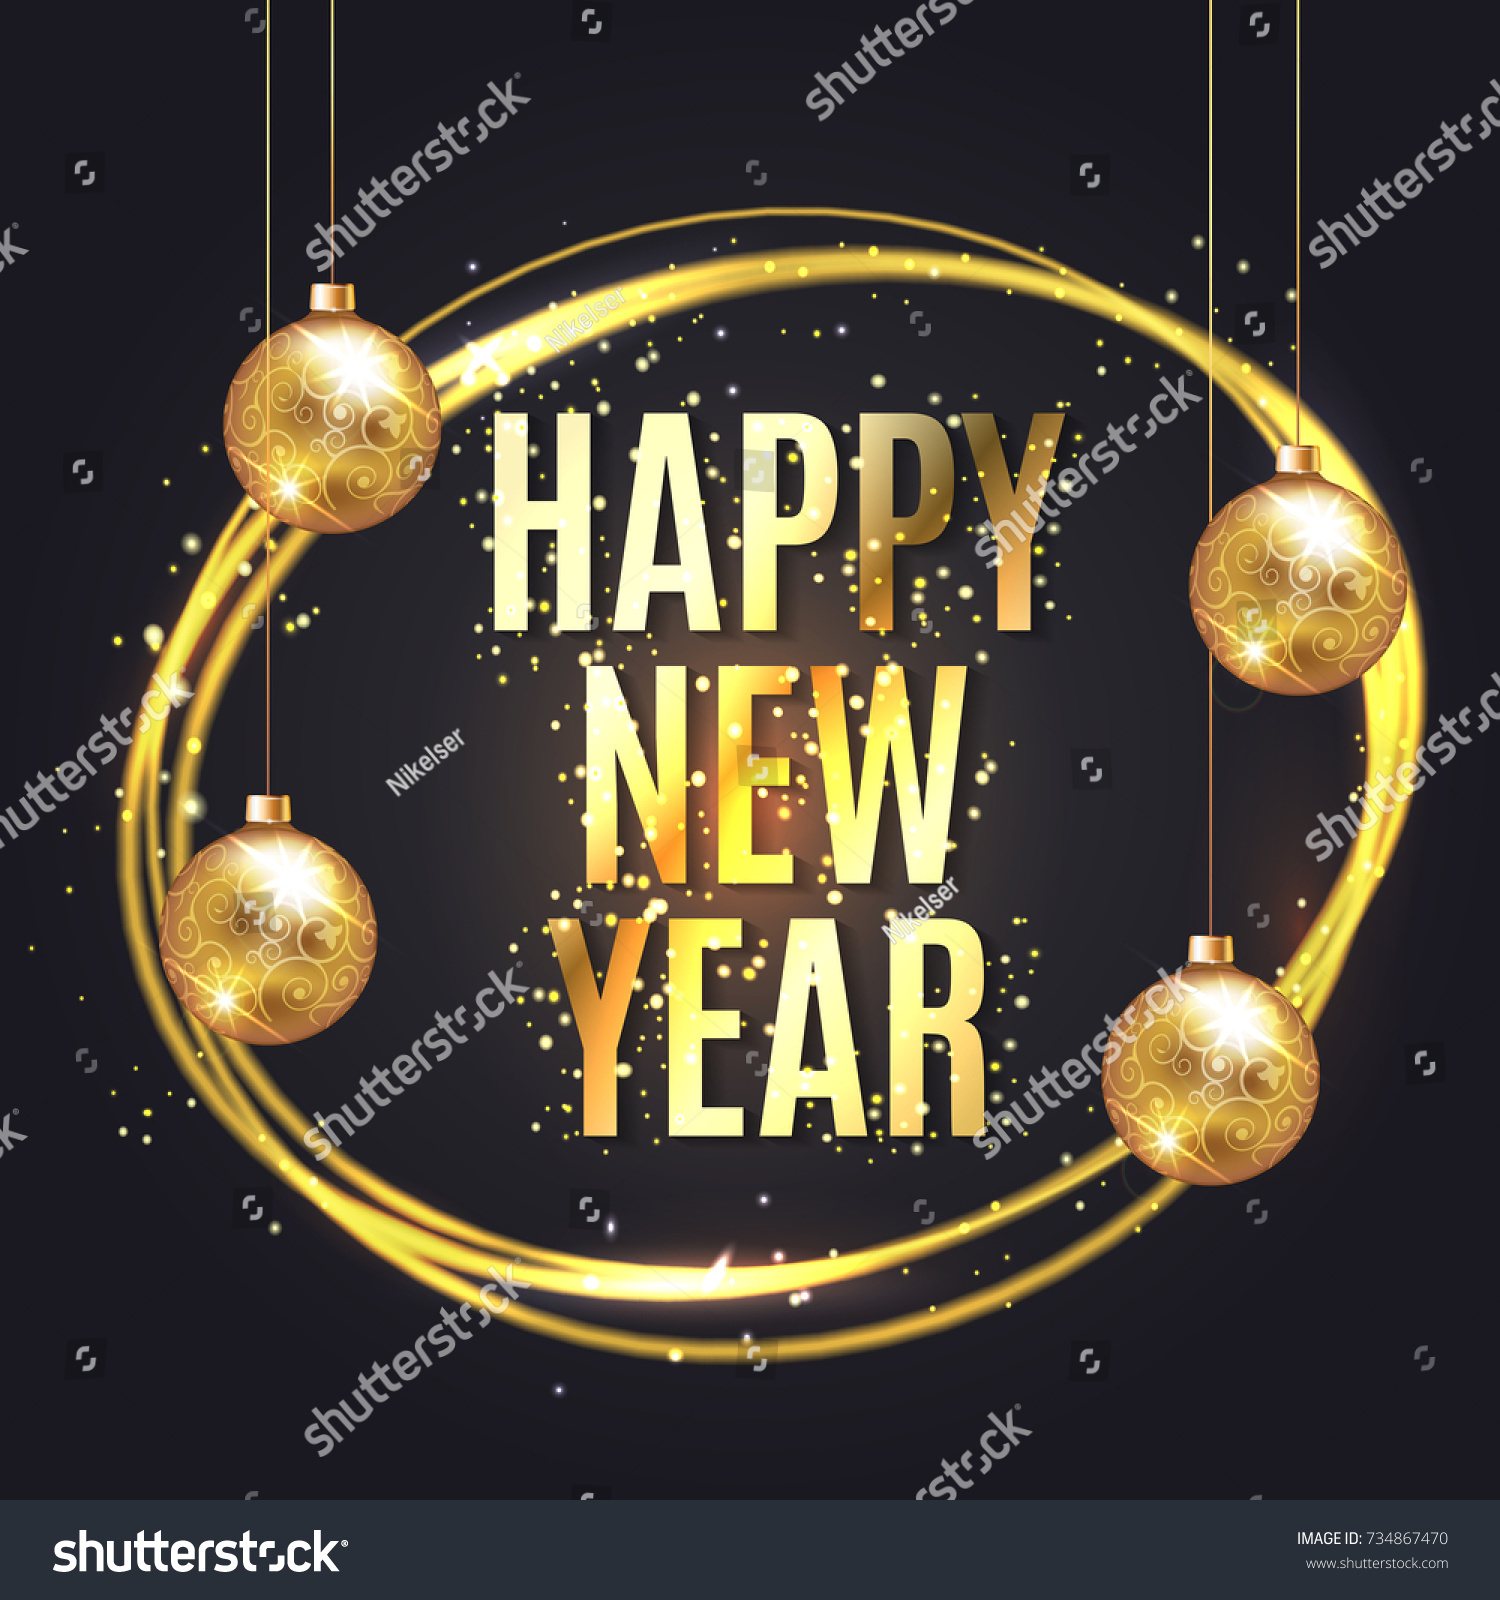 happy new year wishes greeting card with gold glitter confetti and christmas ball on luxury black